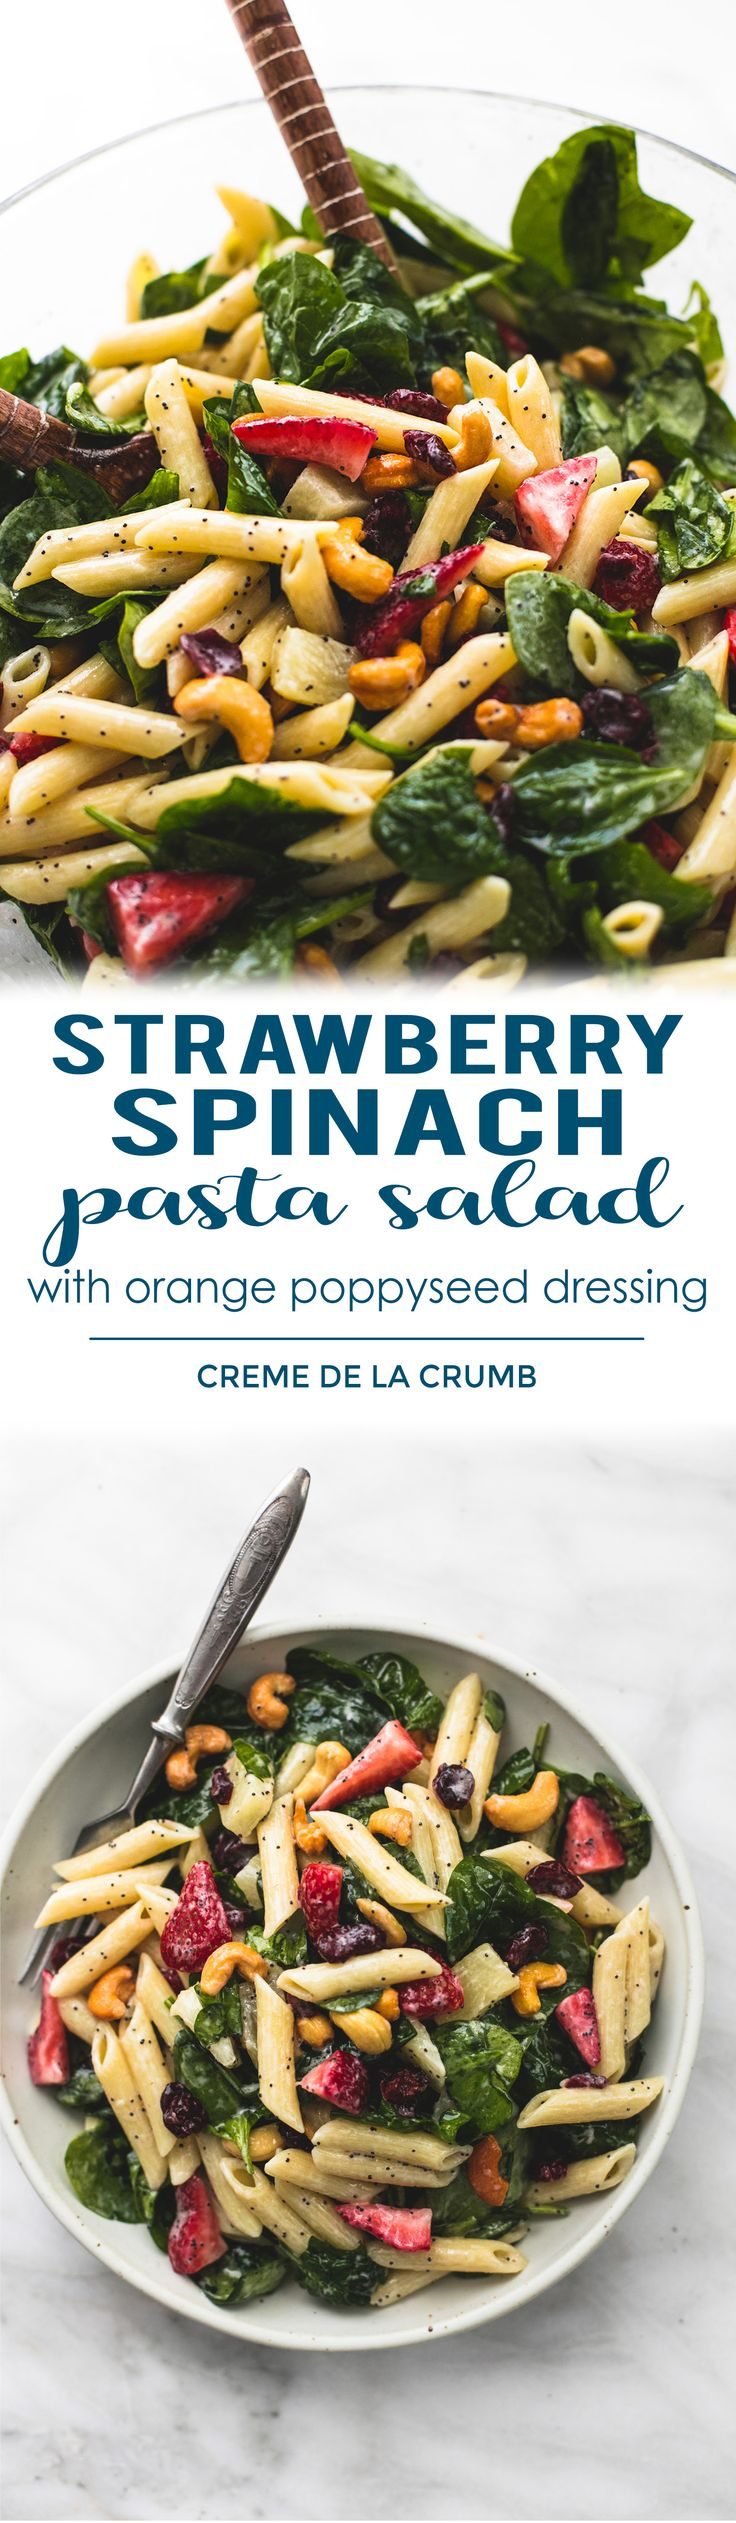 Sweet and tangy strawberry spinach pasta salad with orange poppyseed dressing with pineapple, cashews, and tart cranberries is the perfect potluck side dish for every get together.  | lecremedelacrumb.com